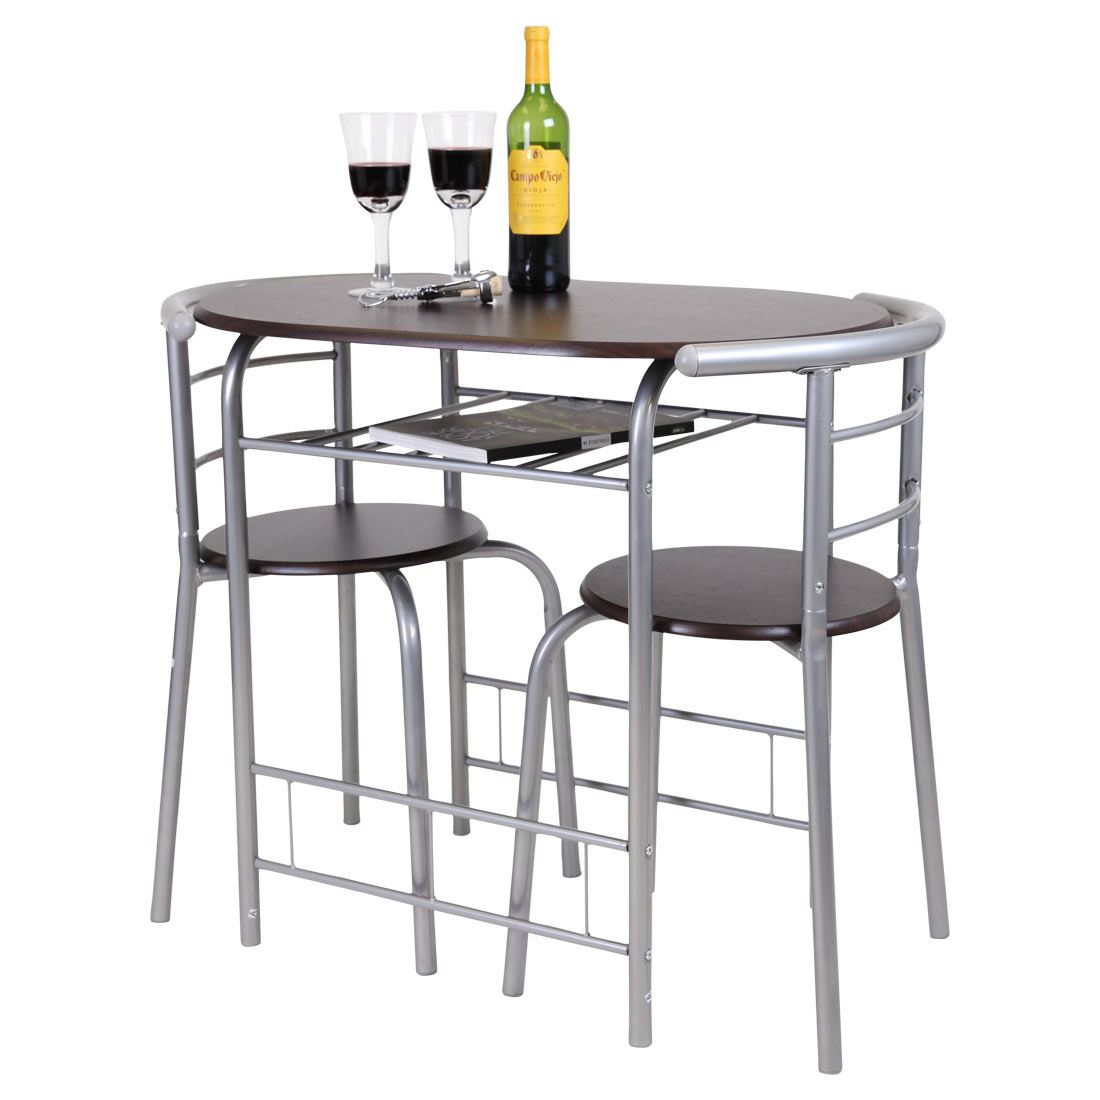 2 chair bistro set u shaped chicago 3 piece dining table and breakfast